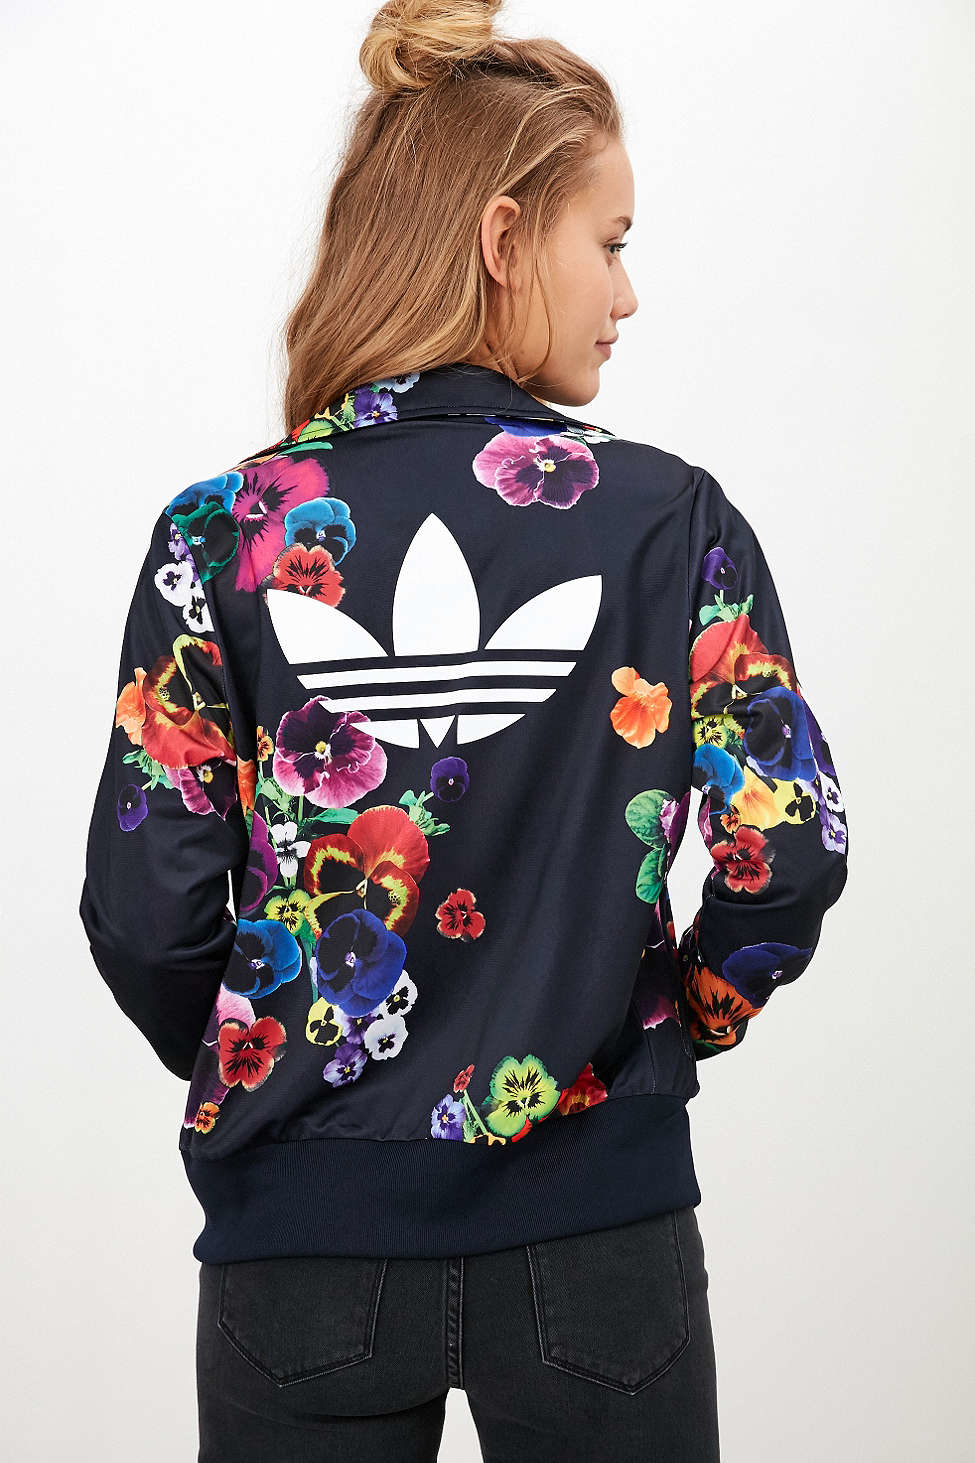 adidas floral clothing